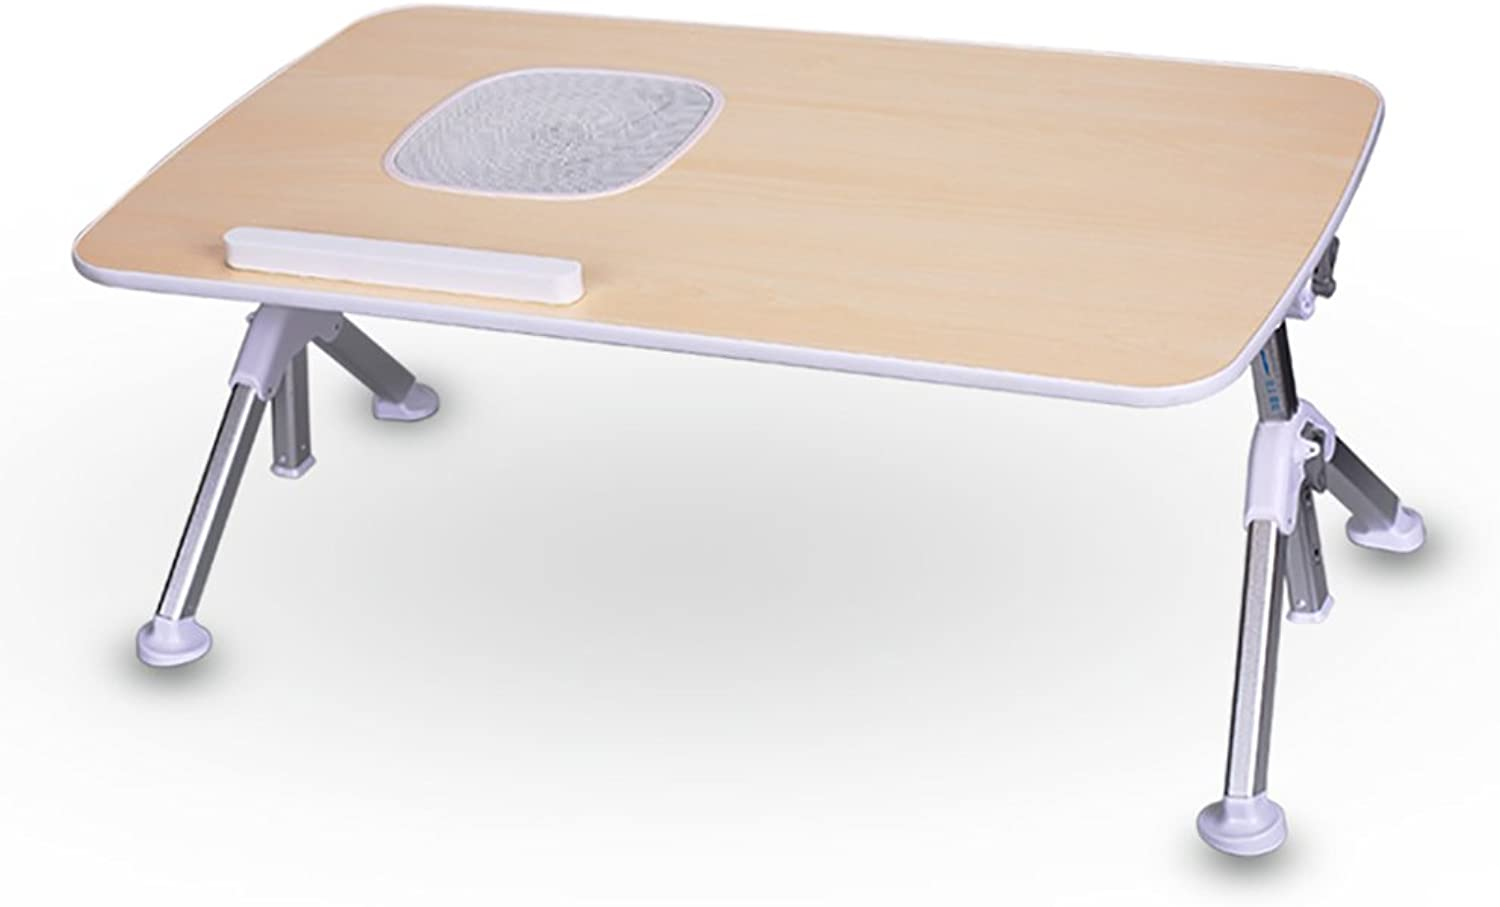 TY BEI Small Wooden Folding Table - Computer Desk - with Fan and Adjustable Height Legs and Table top - Portable Square Folding Table - TV Catering and Coffee and Coffee Table   (Size   52  30cm)